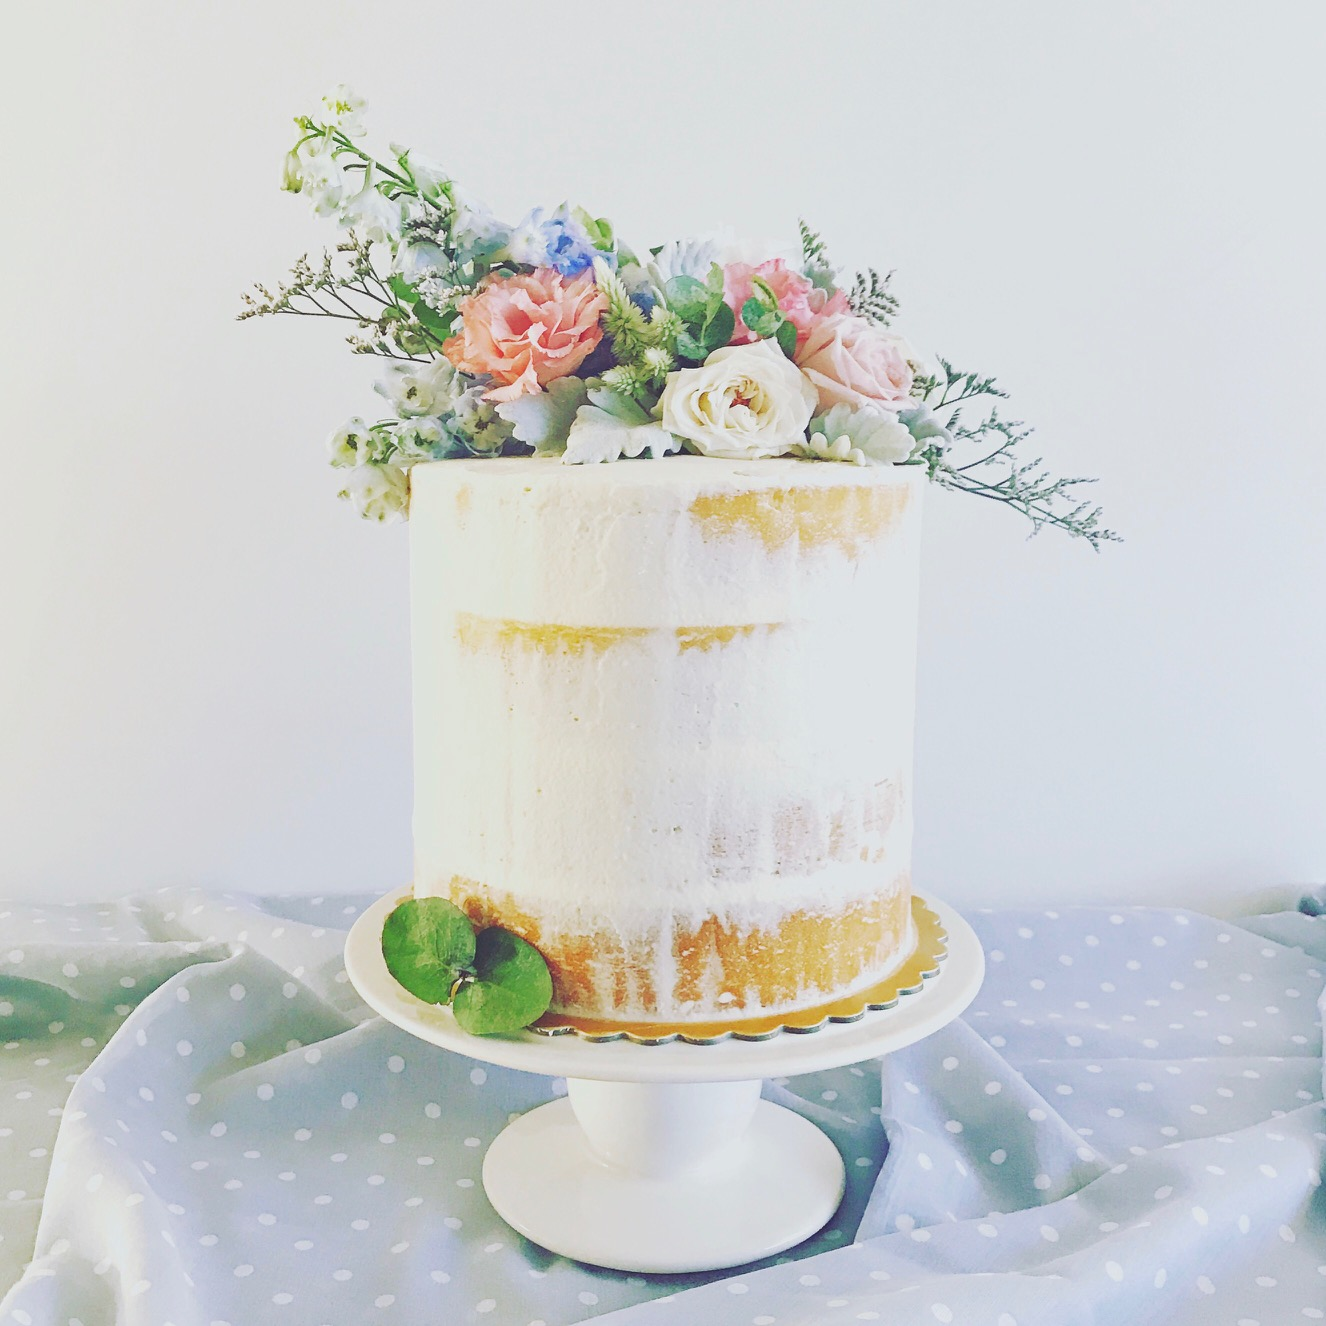 semi-naked cake with fresh flowers